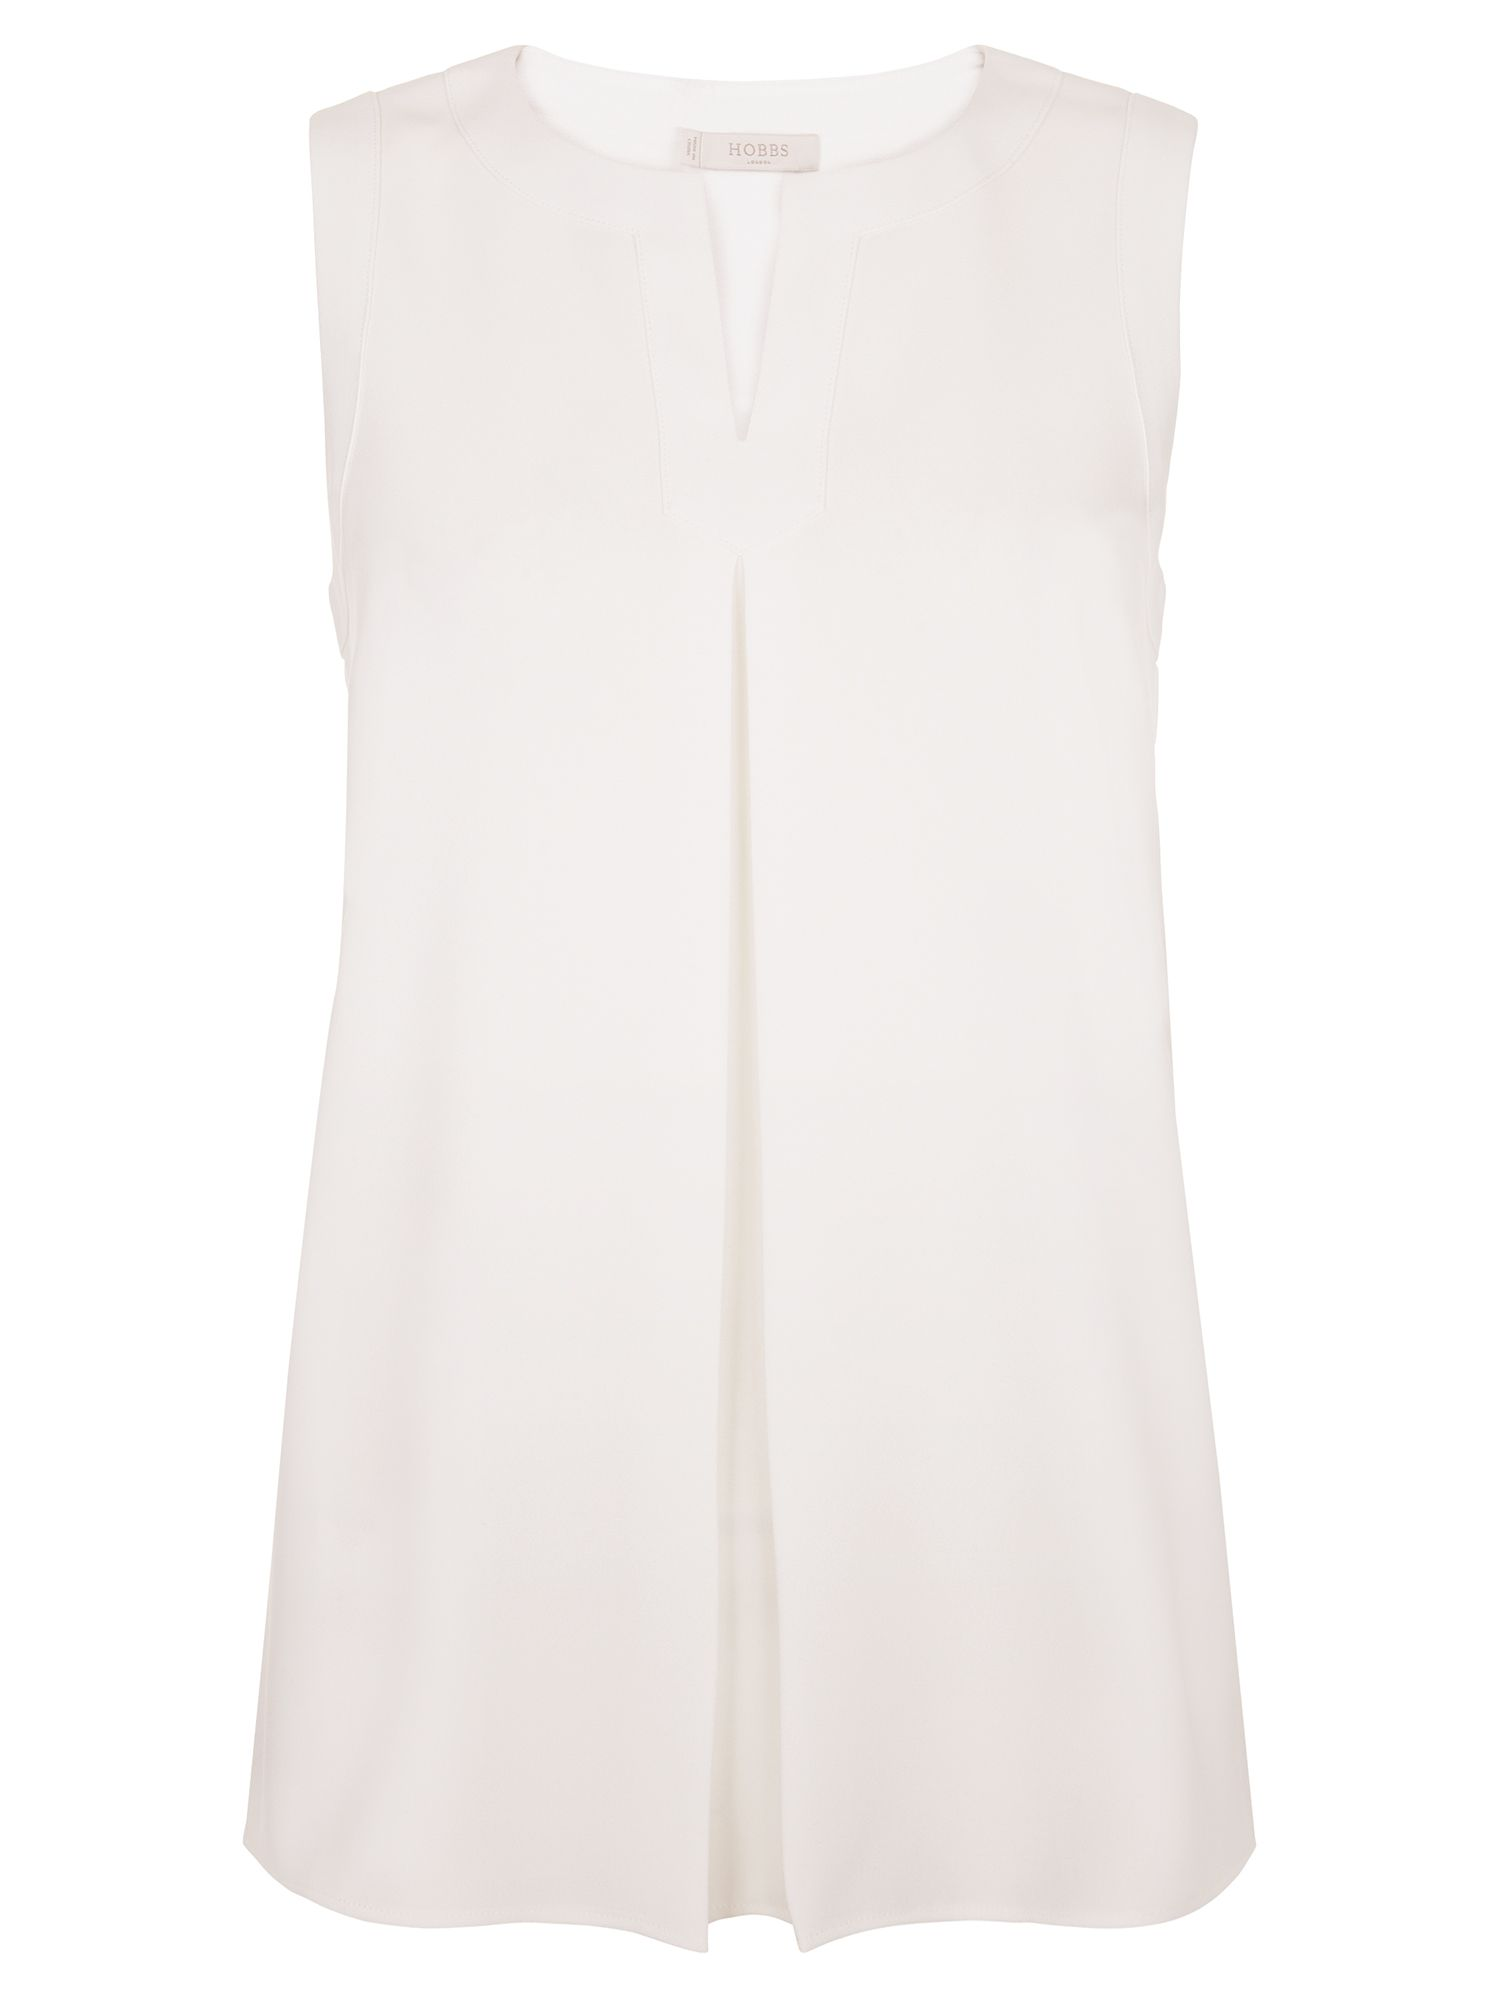 Hobbs Lavina Top, White